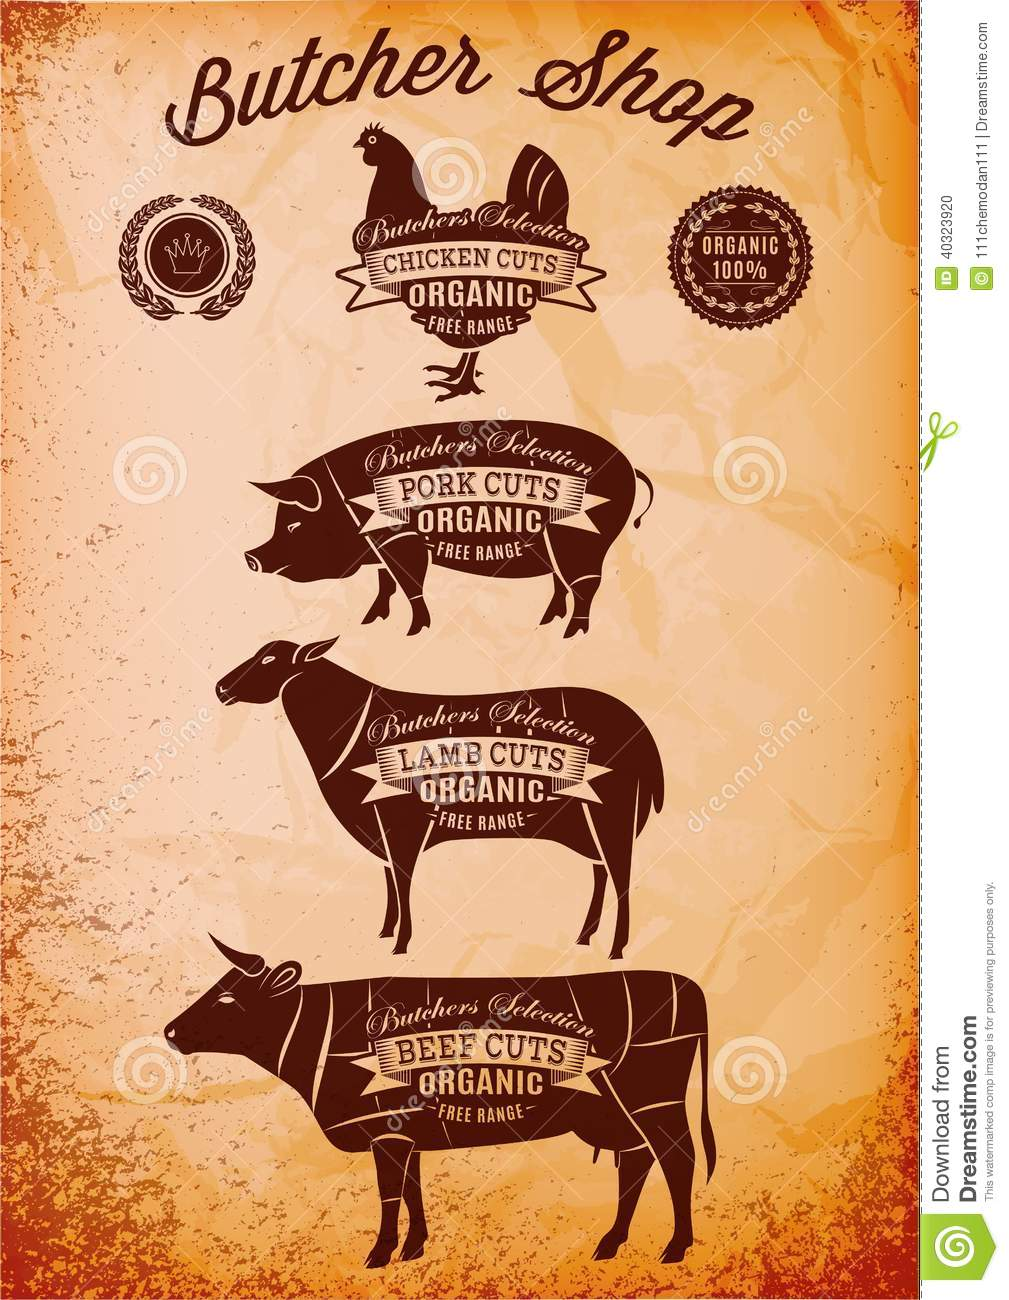 Pork business plan